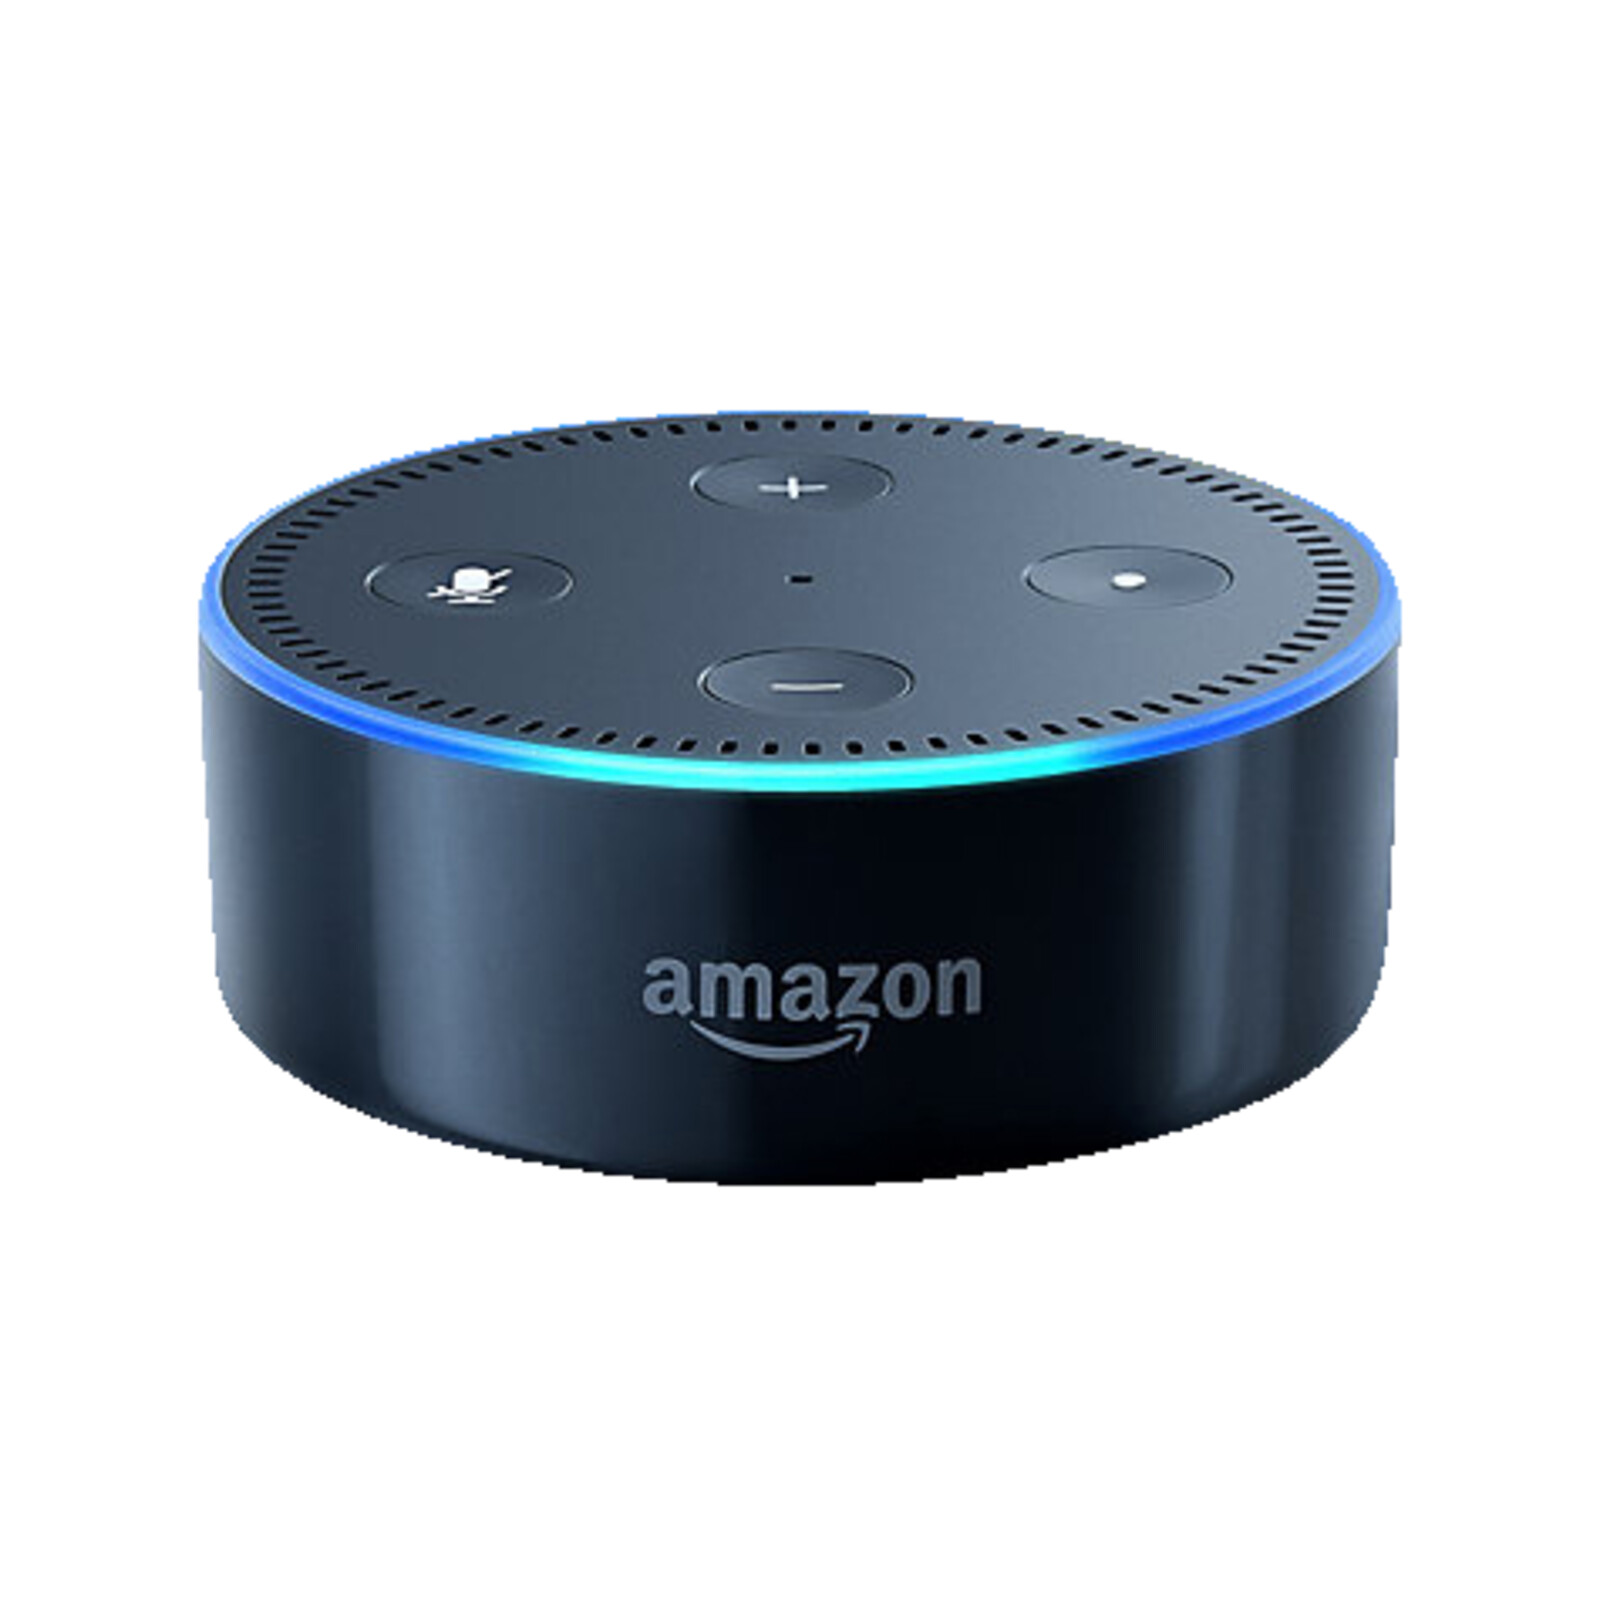 amazon echo dot 2 generation kompatibel mit amazon alexa. Black Bedroom Furniture Sets. Home Design Ideas